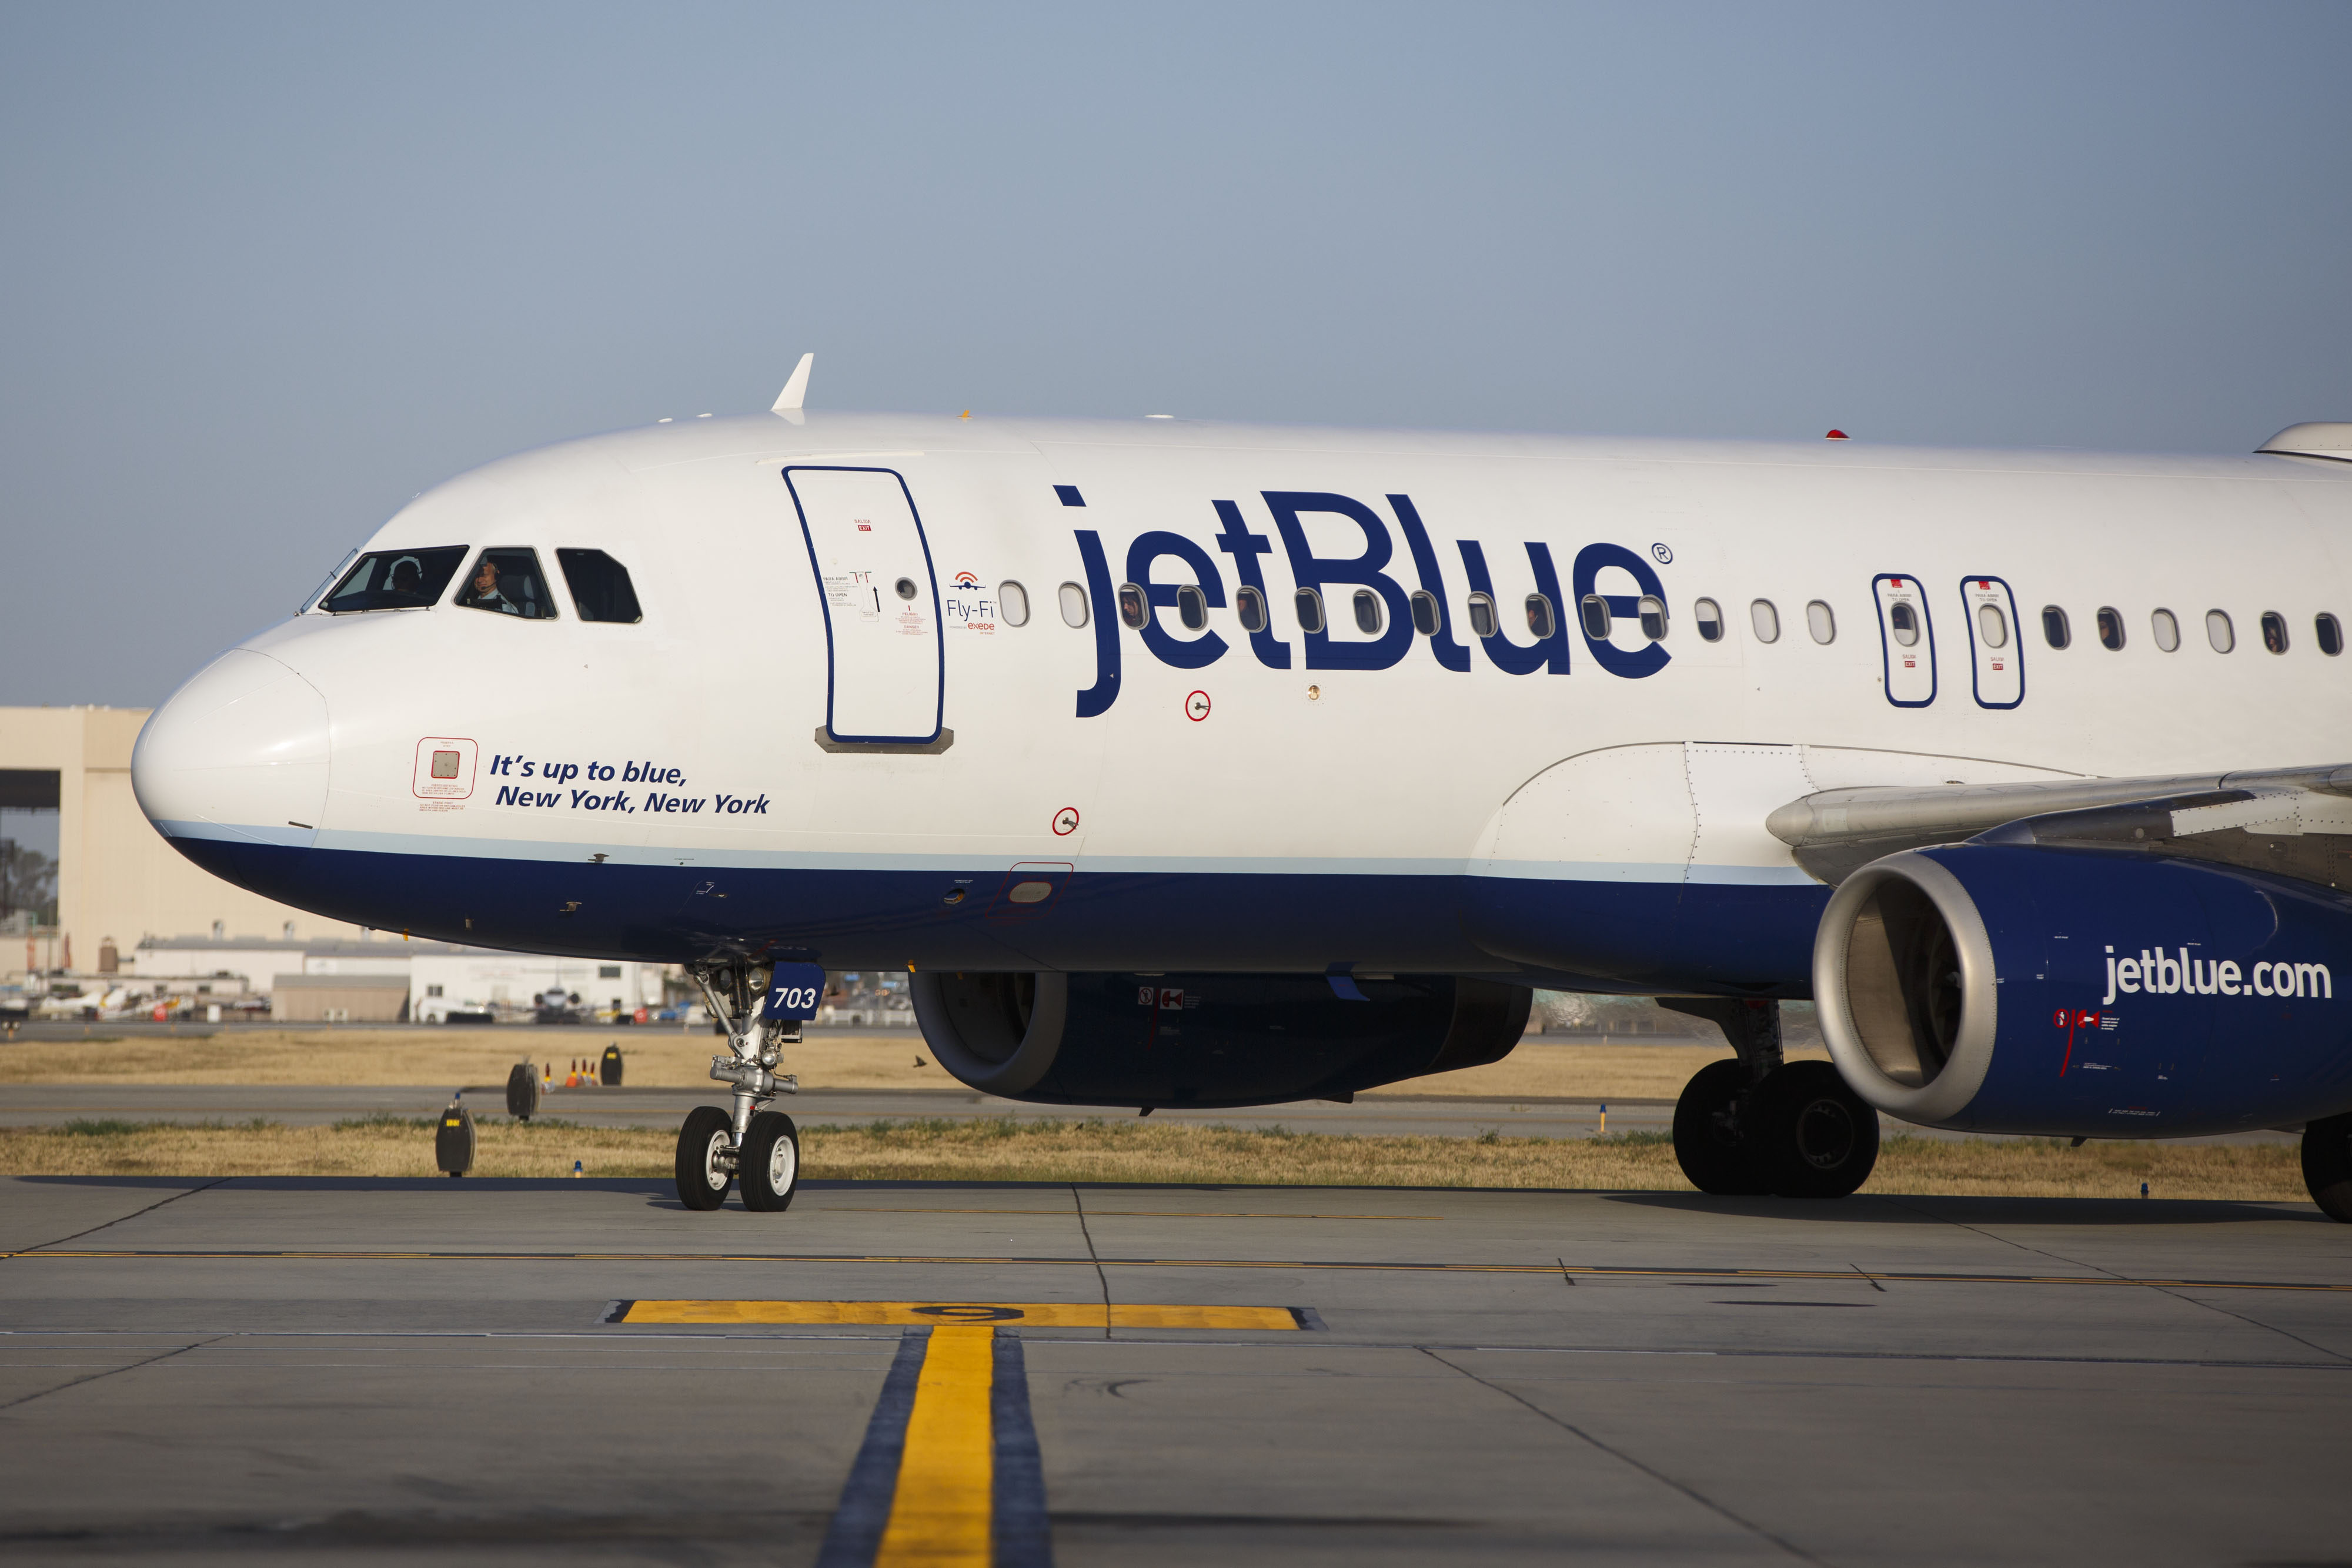 A JetBlue Airways Corp. Airbus Group SE A320 aircraft taxis to the gate on the tarmac at Long Beach Airport (LGB) in Long Beach, California, on April 25, 2016.